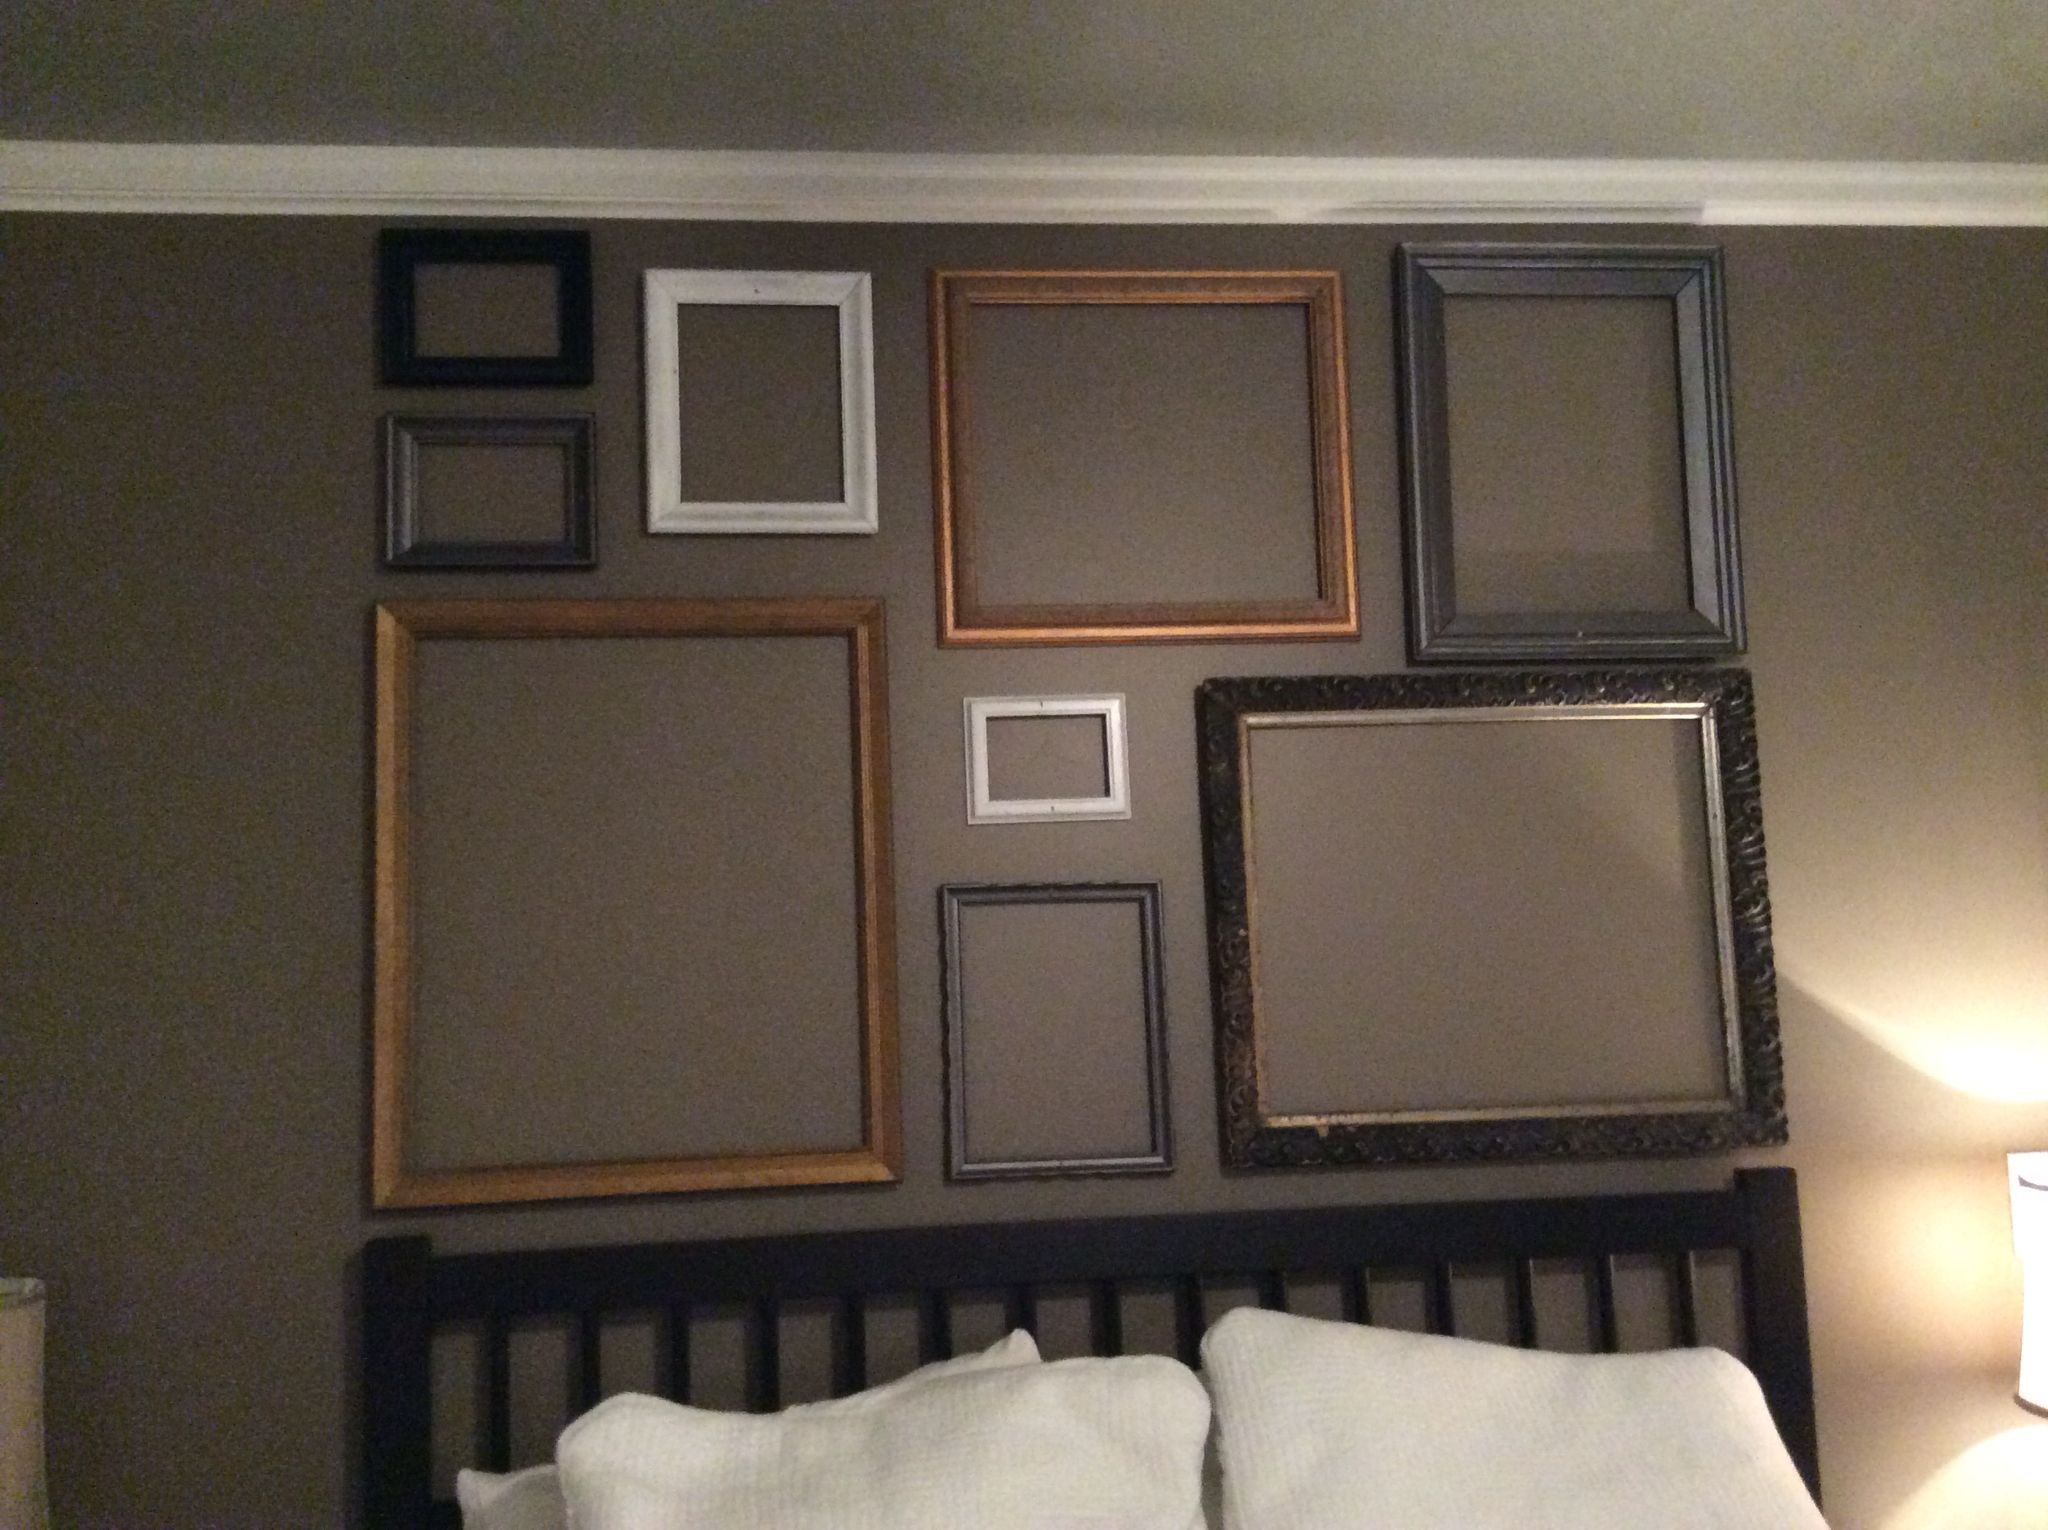 My headboard in my master Old picture frames arranged nicely Our